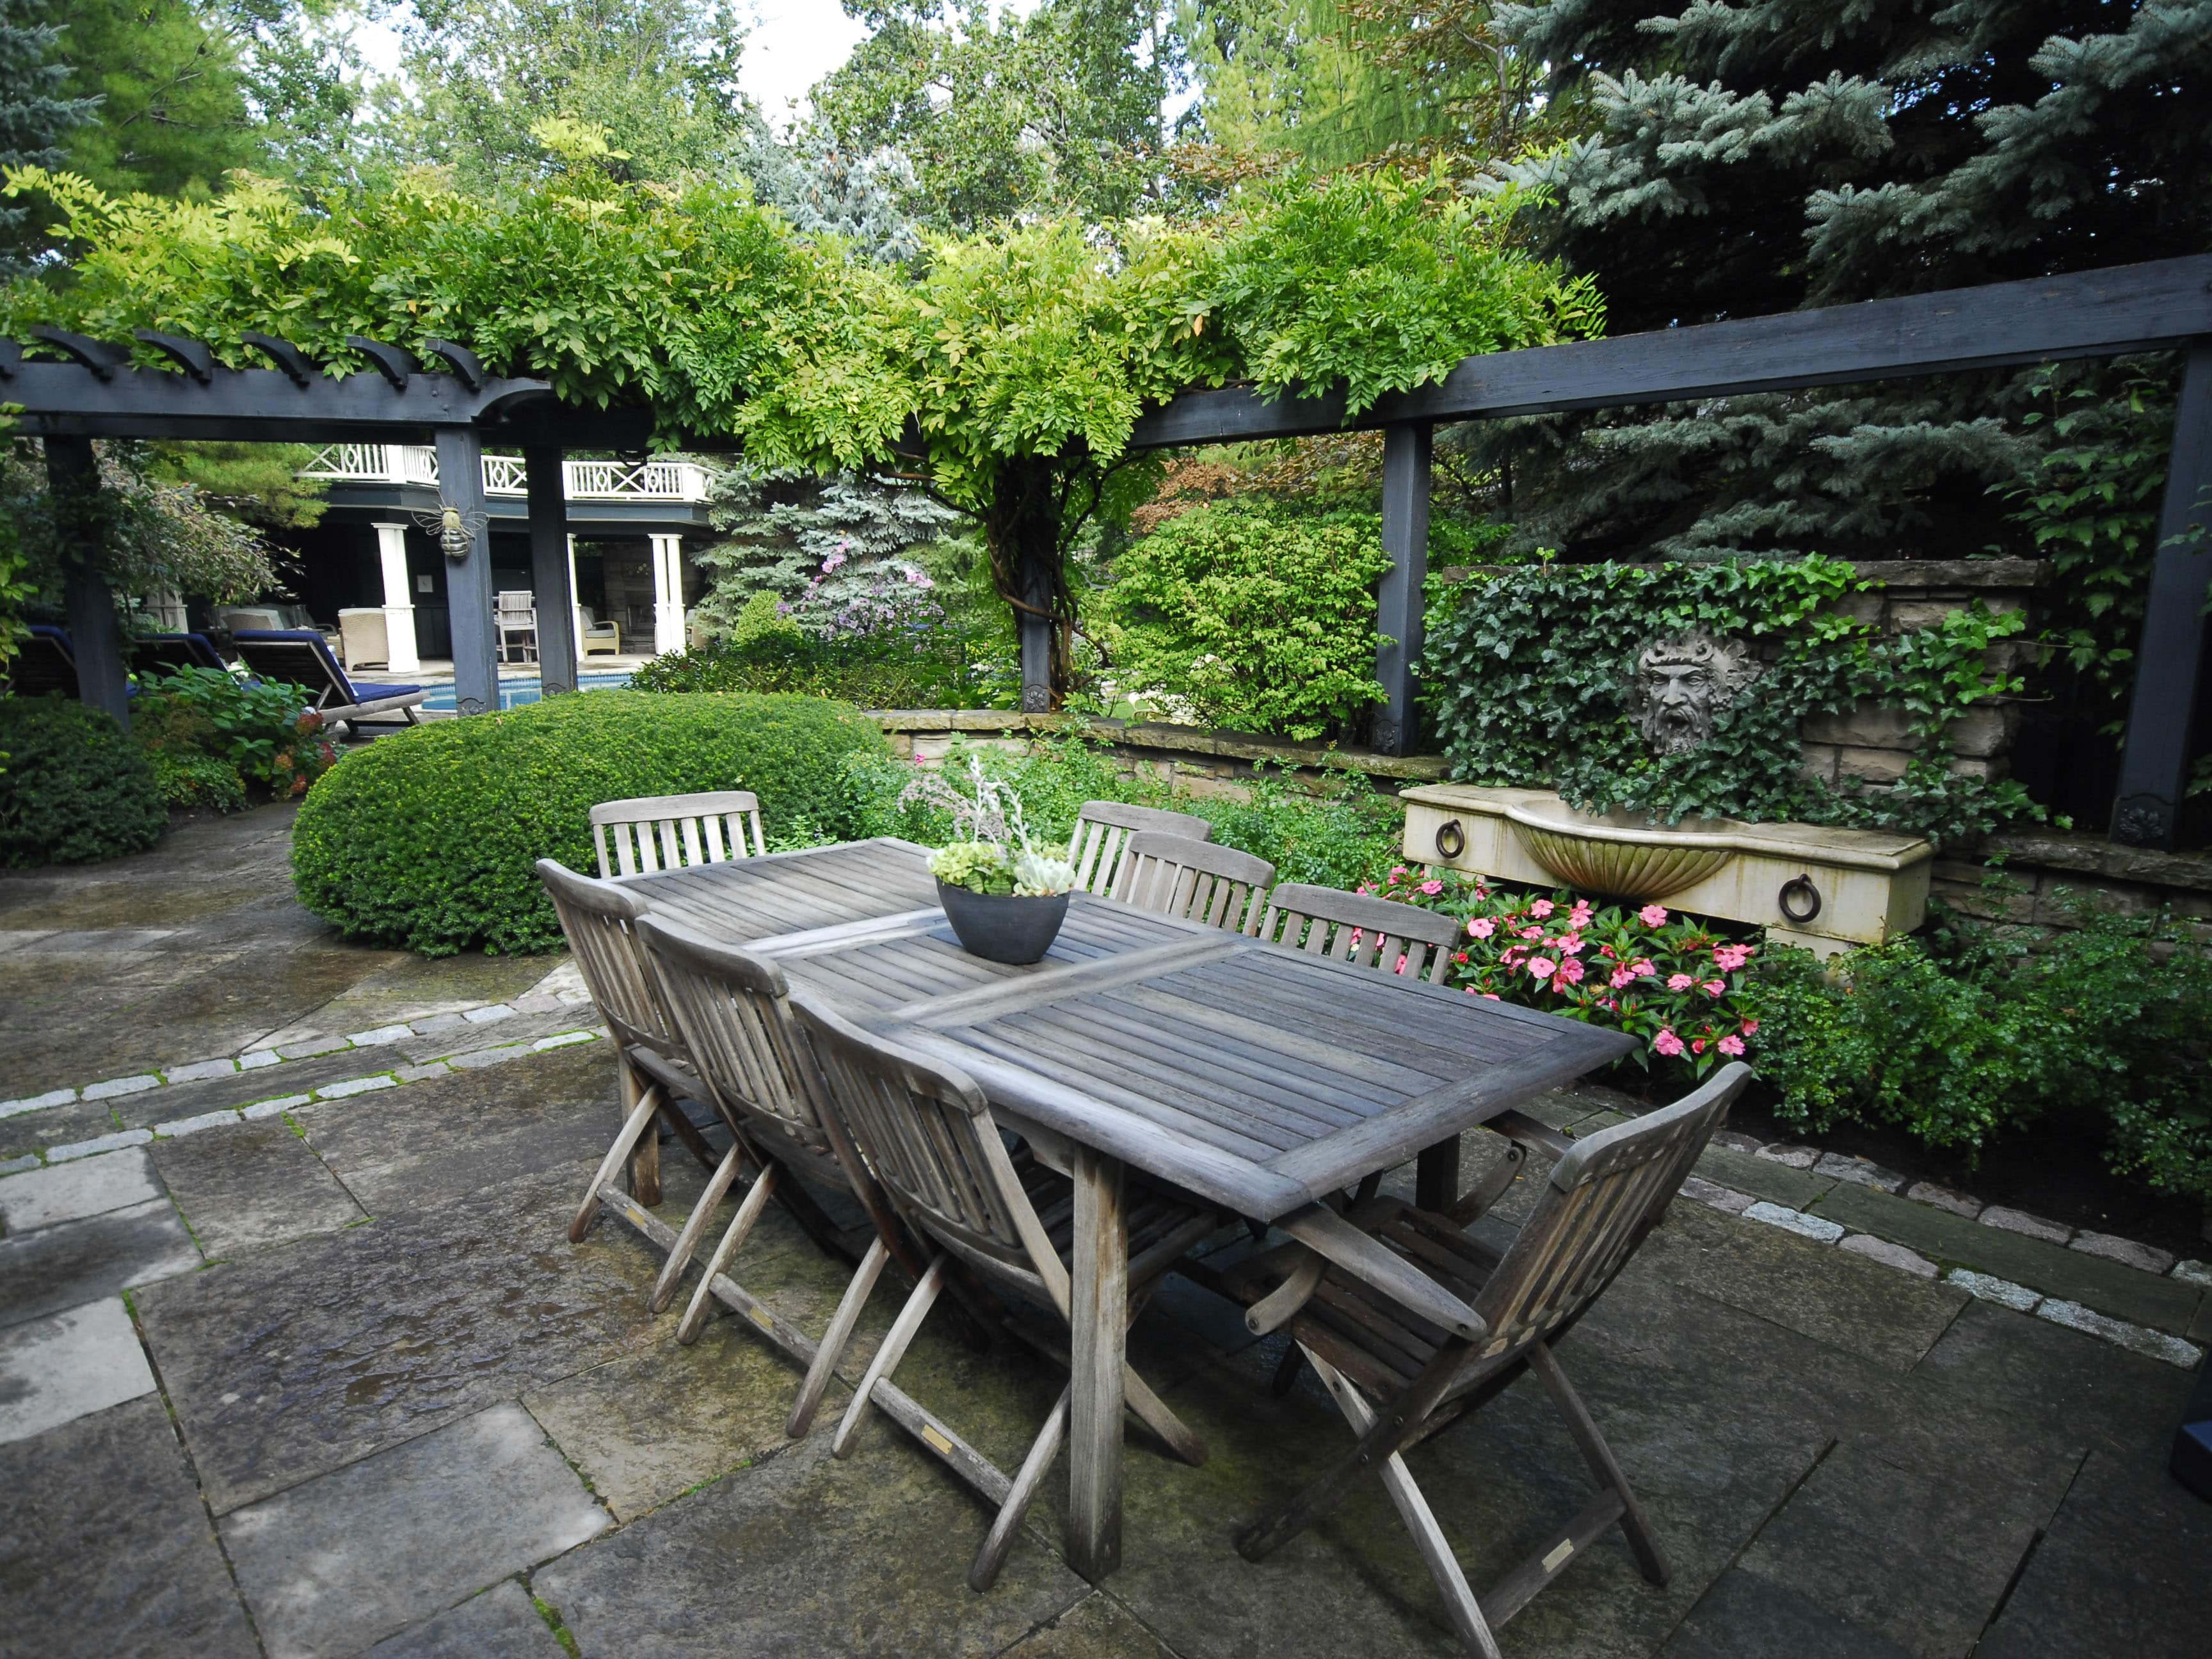 service: maintenance. Backyard wooden table and wooden chairs surrounded by greenery